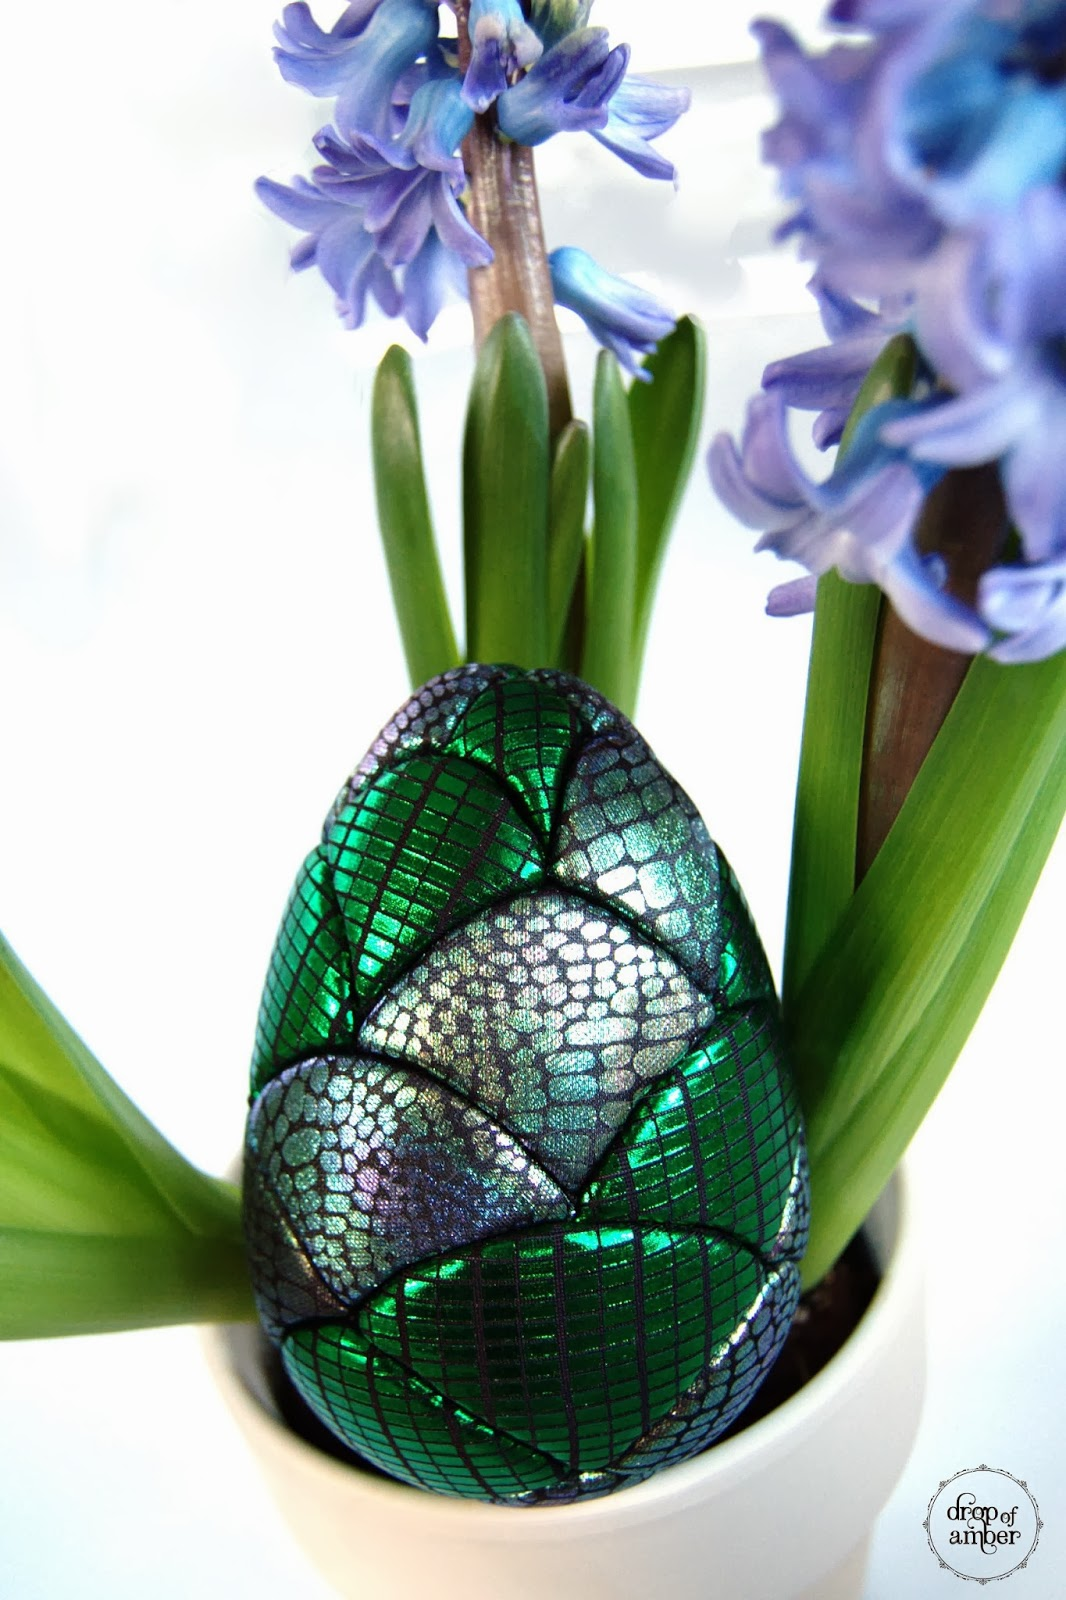 Next Came Several Smaller Eggs For More Traditional Easter Home Decor